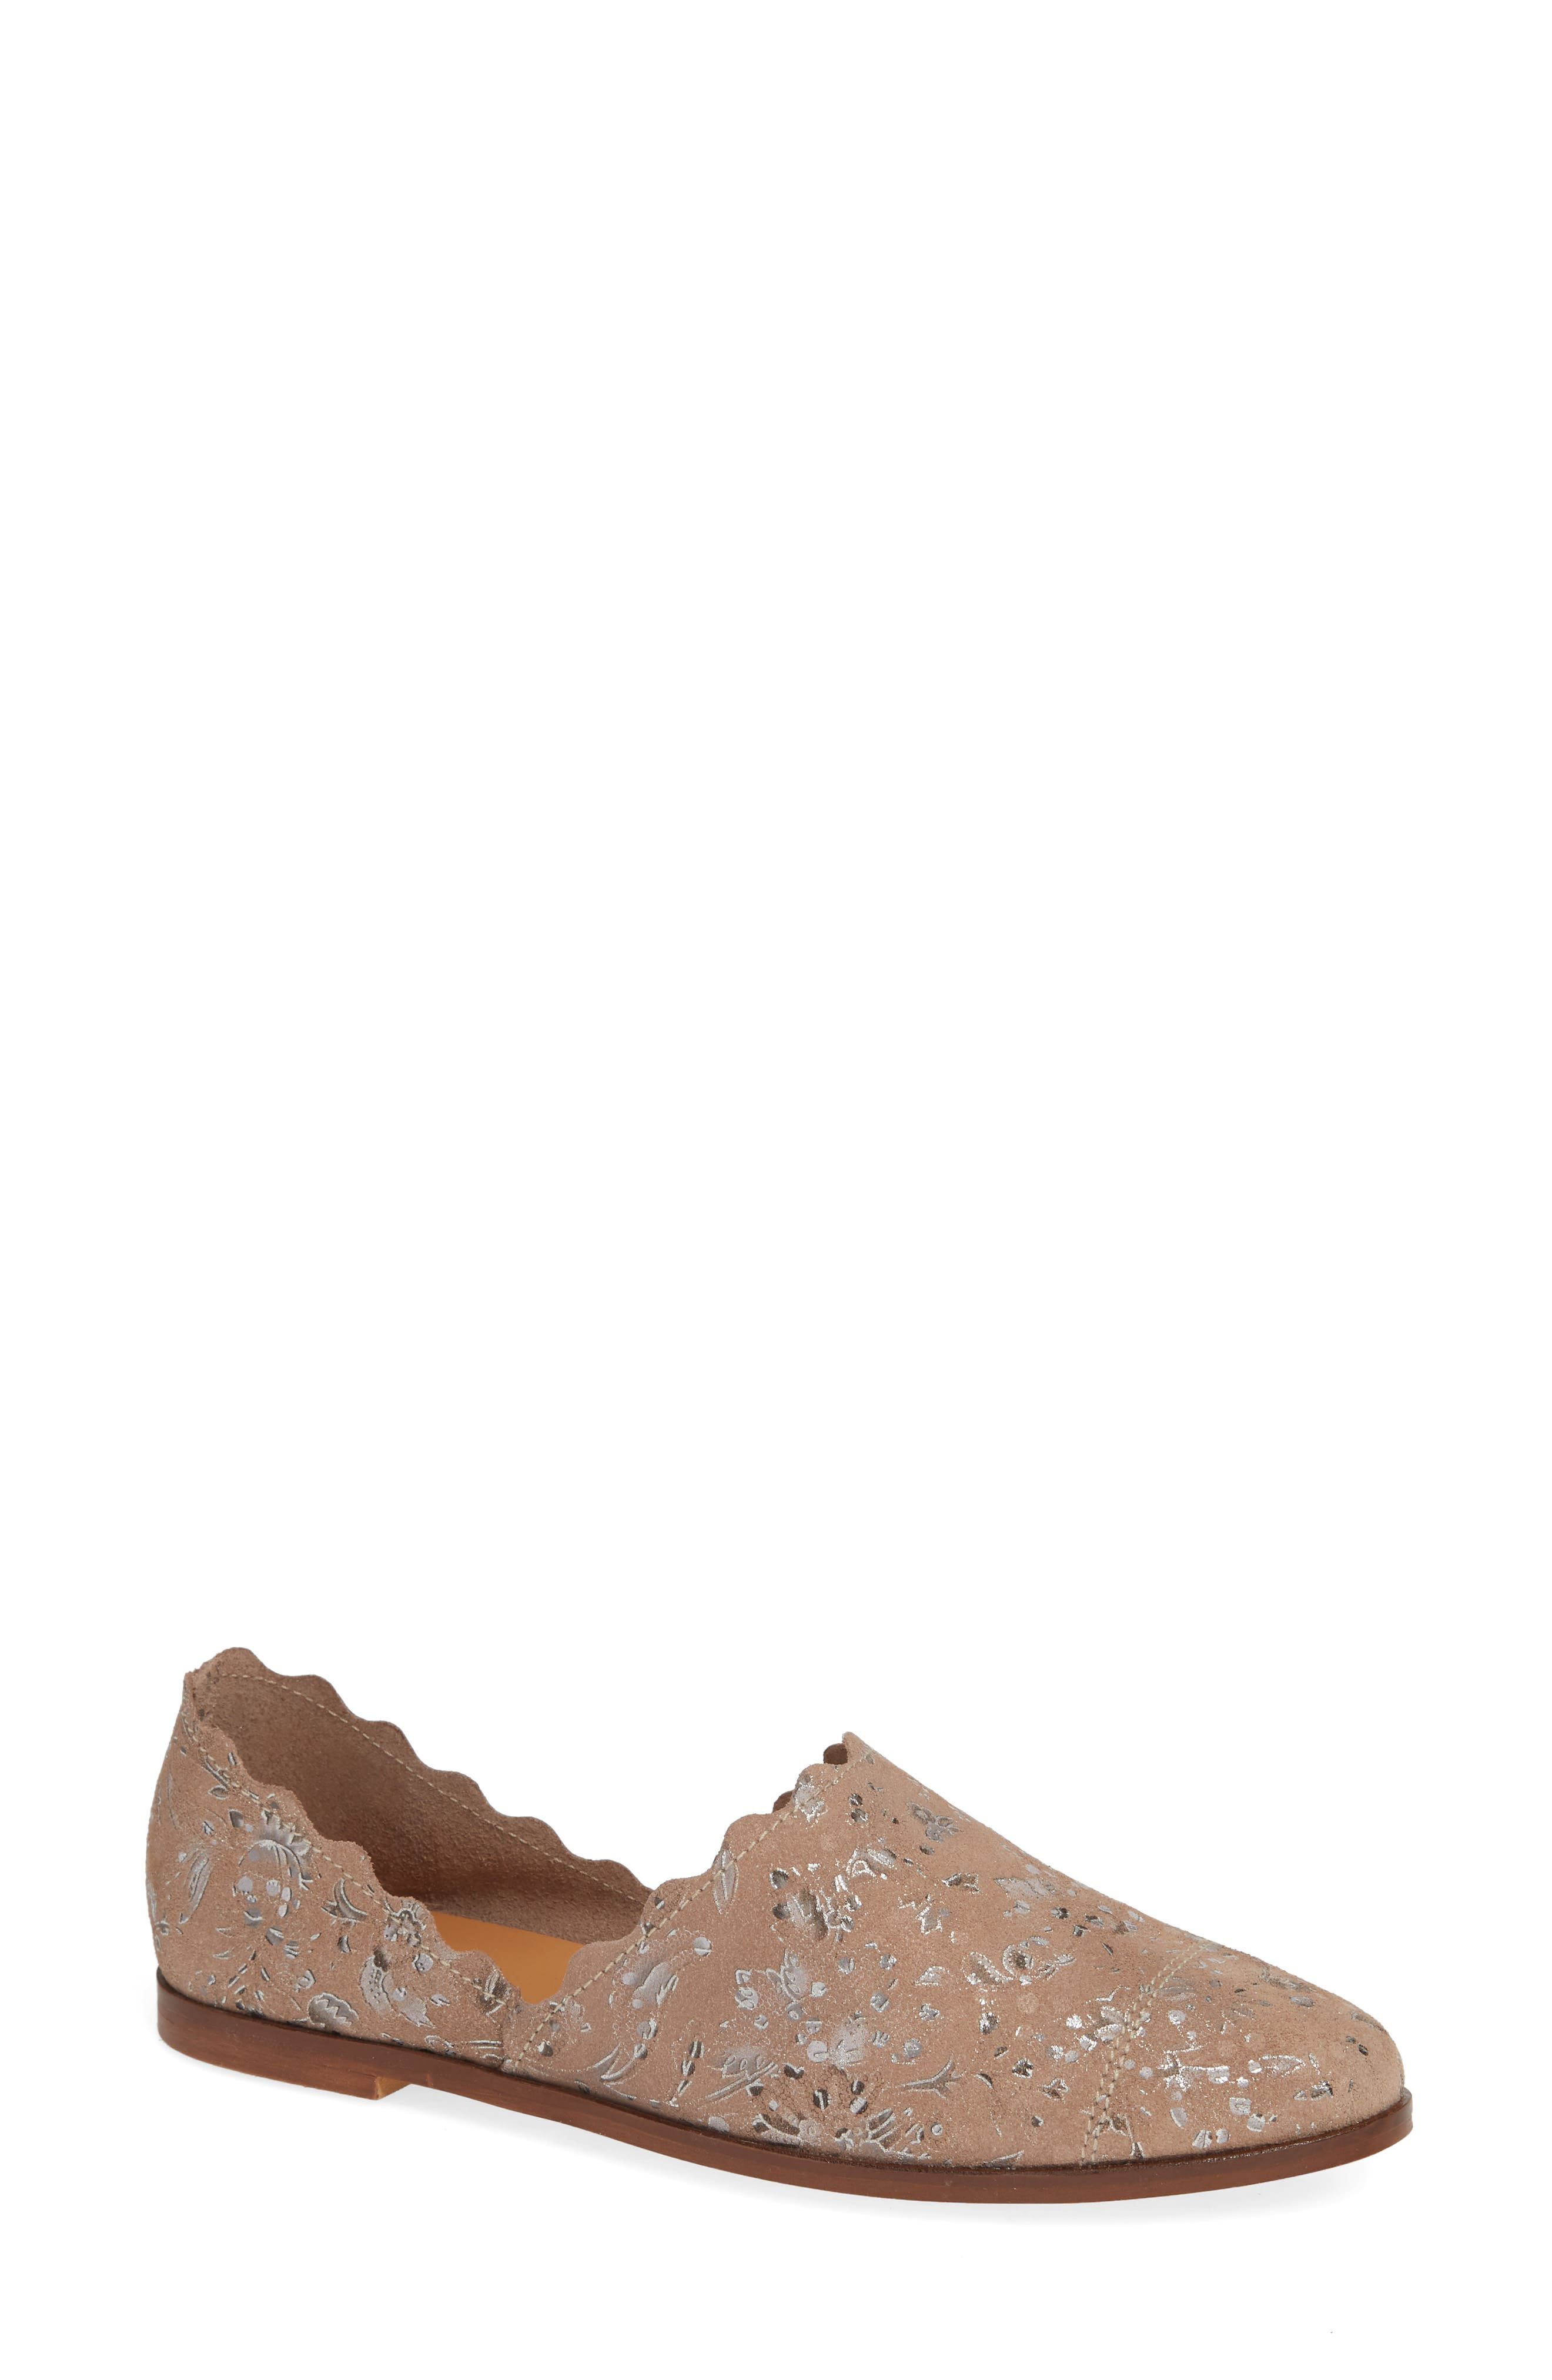 A breezy d\\\'Orsay flat with scalloped-opening trim is made from lightly weathered suede and detailed with a stitched cap toe. Style Name: Klub Nico Georgette D\\\'Orsay Flat (Women). Style Number: 5476389. Available in stores.